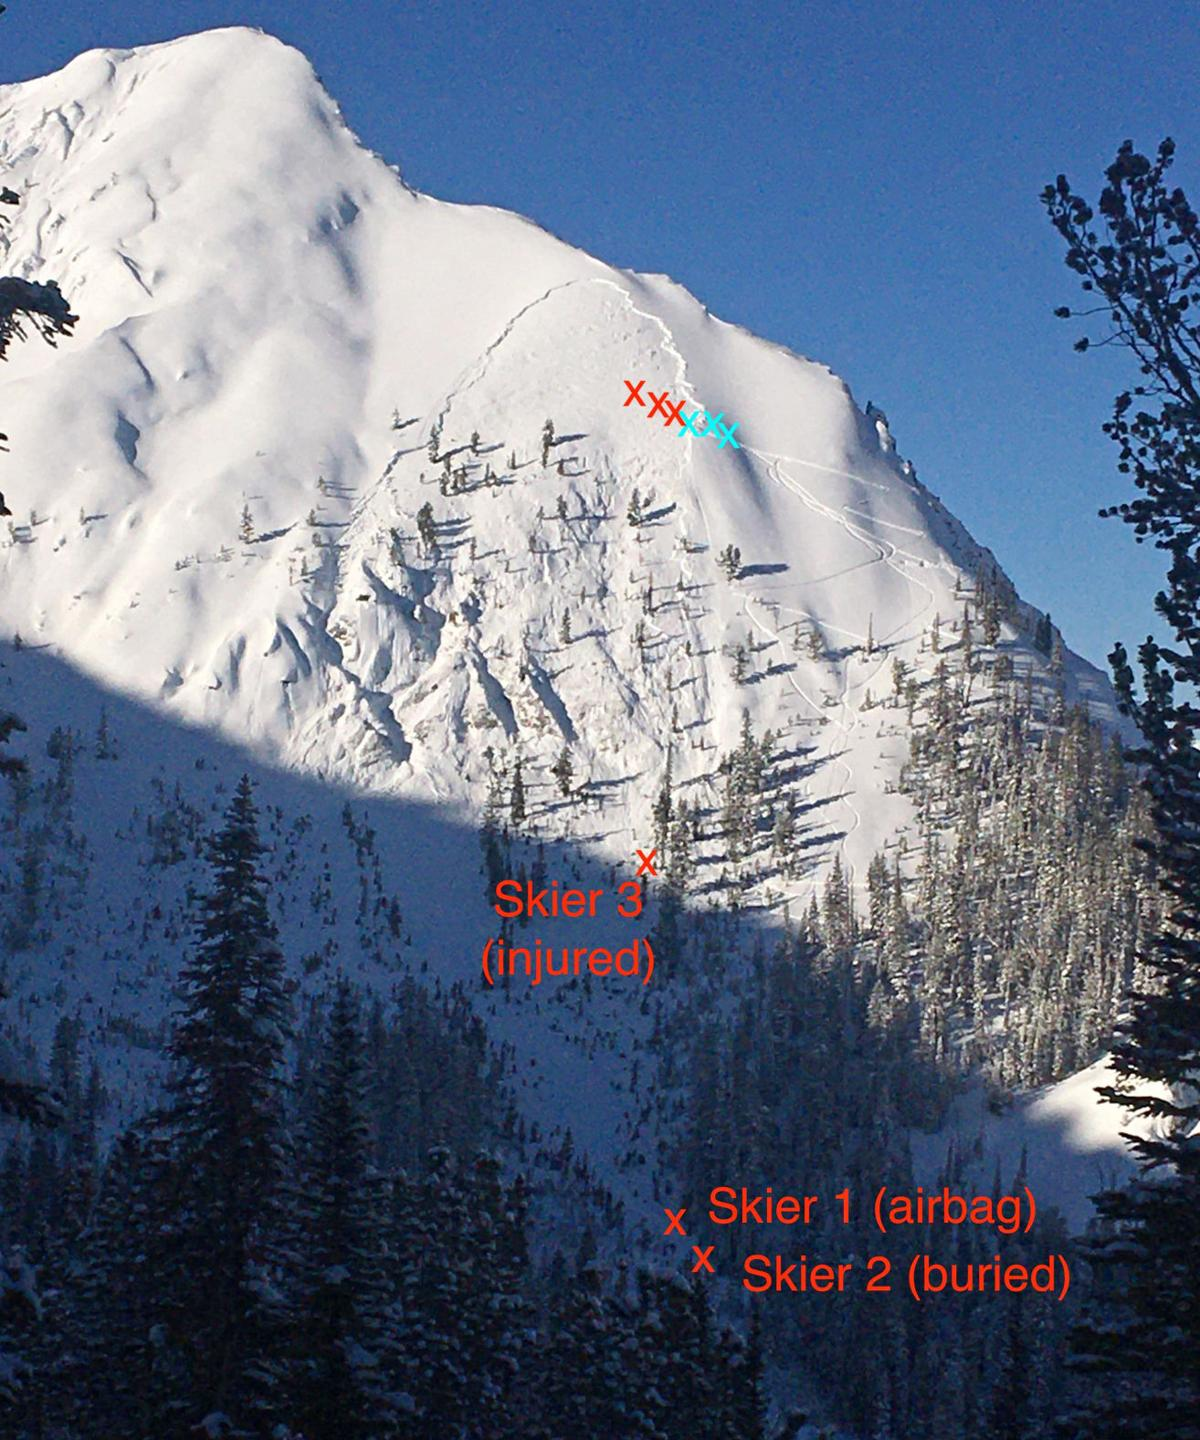 location on the mountain of the skiers injured in the avalanche